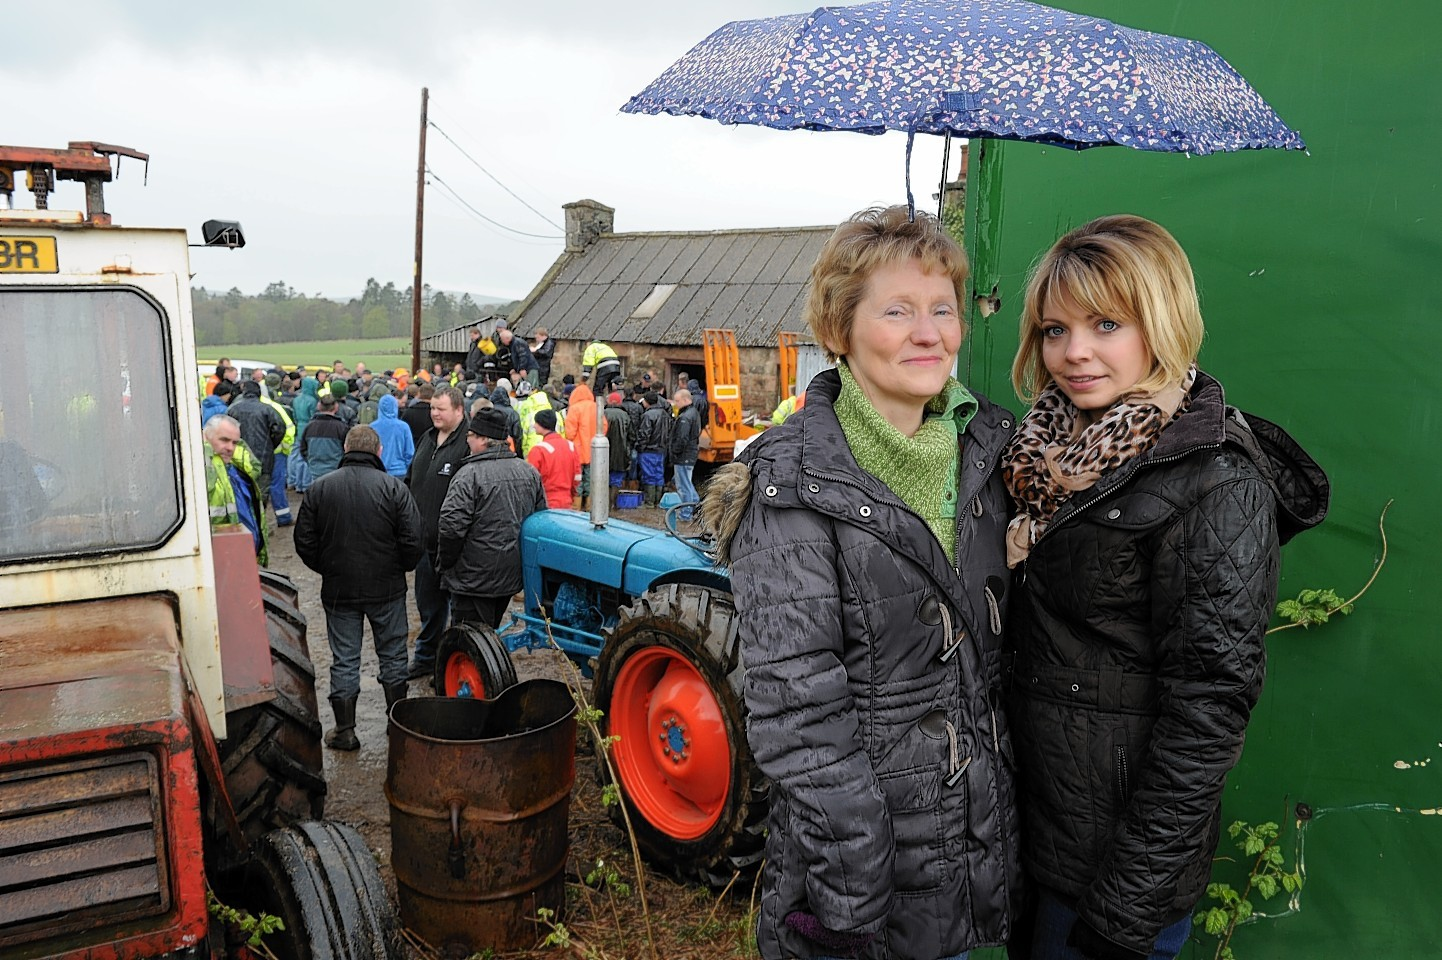 A roup at the Pitmedden Smithy in Torphins was heald after the death of blacksmith Douglas Reid. Pictured is wife Linda and daughter Rachel. Picture by COLIN RENNIE